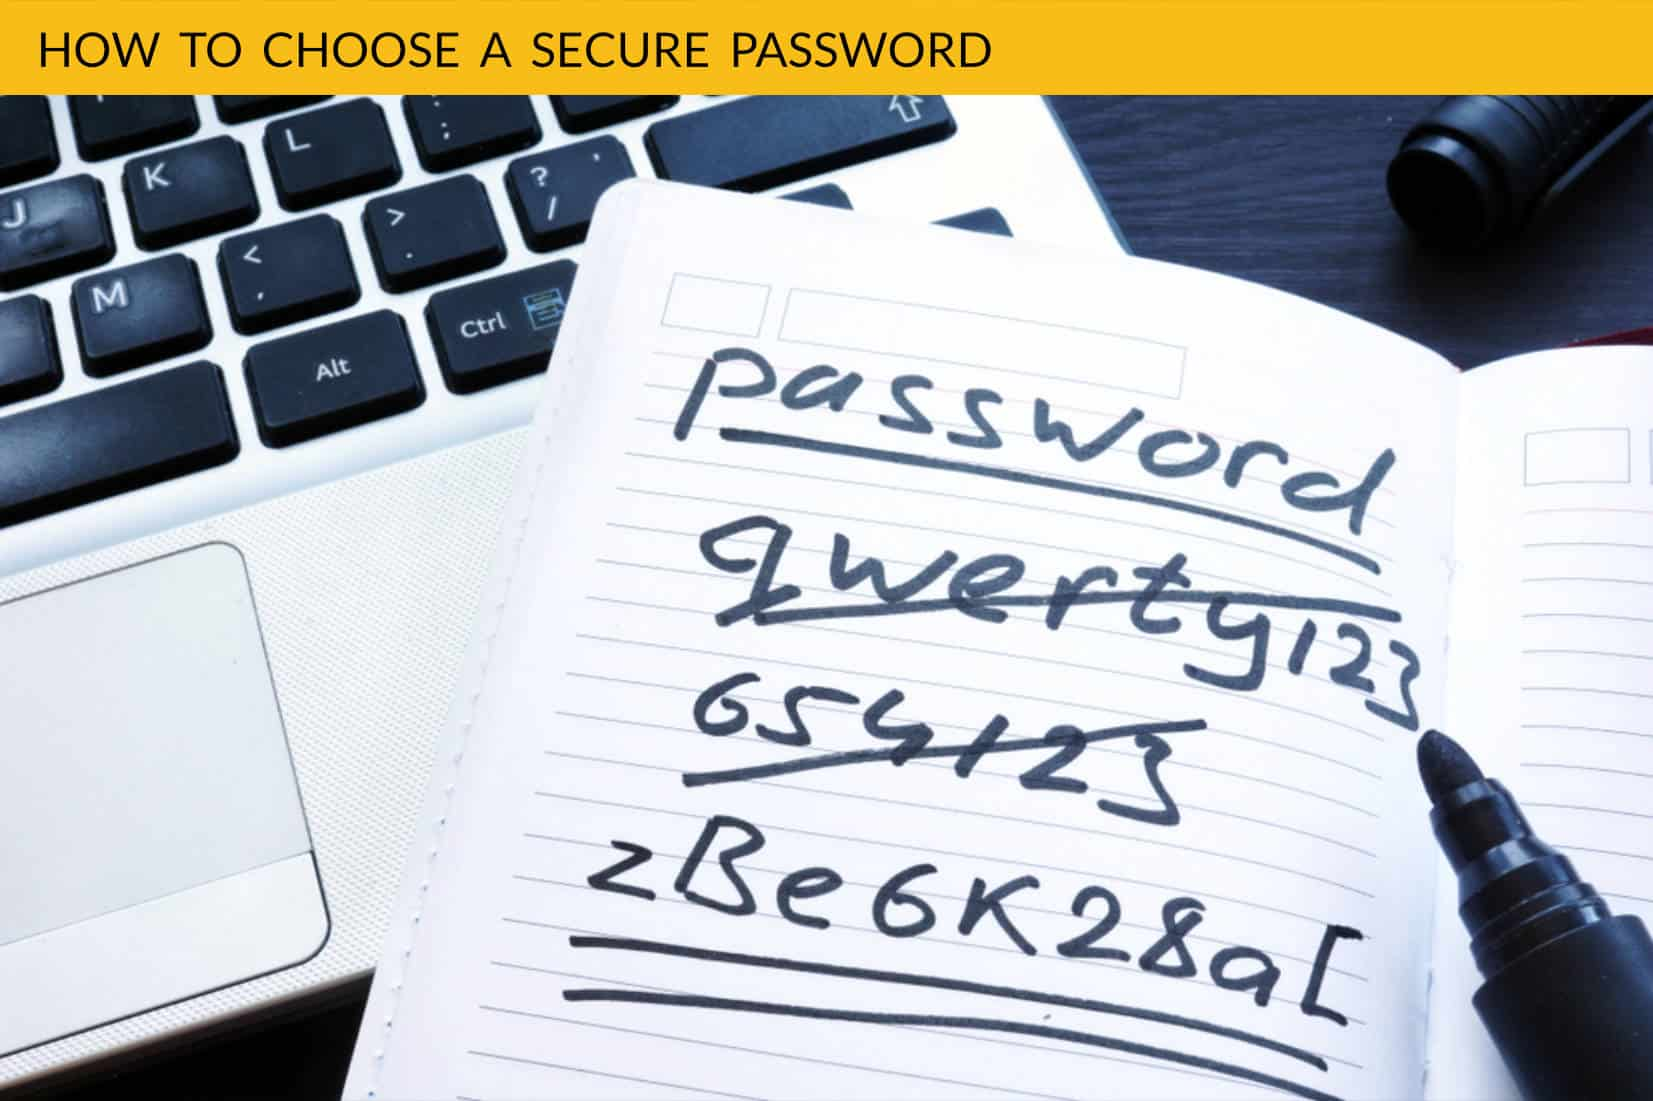 Choosing a secure password